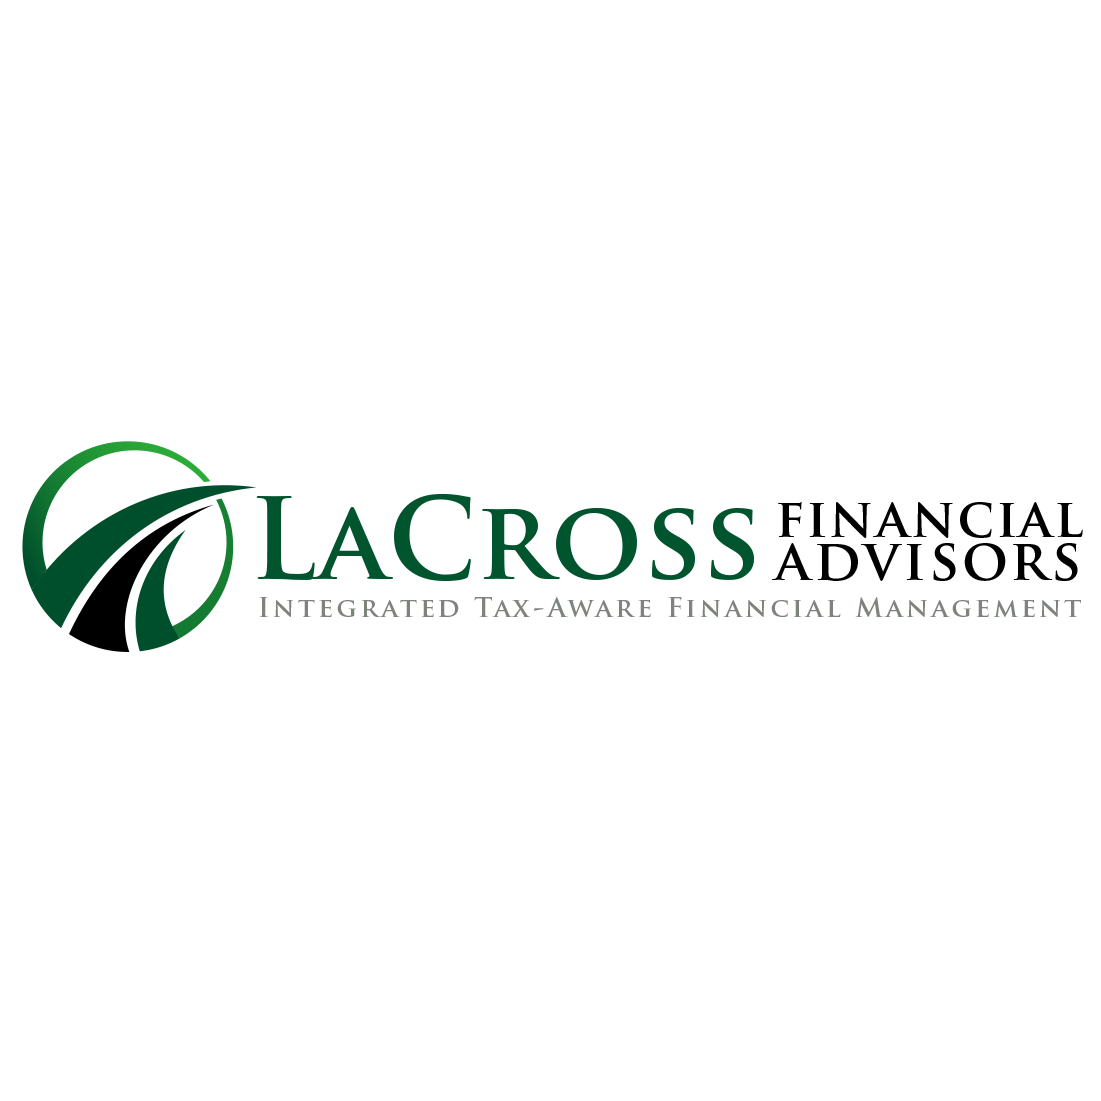 LaCross Financial Advisors - Beverly, MA 01915 - (978)289-4150 | ShowMeLocal.com